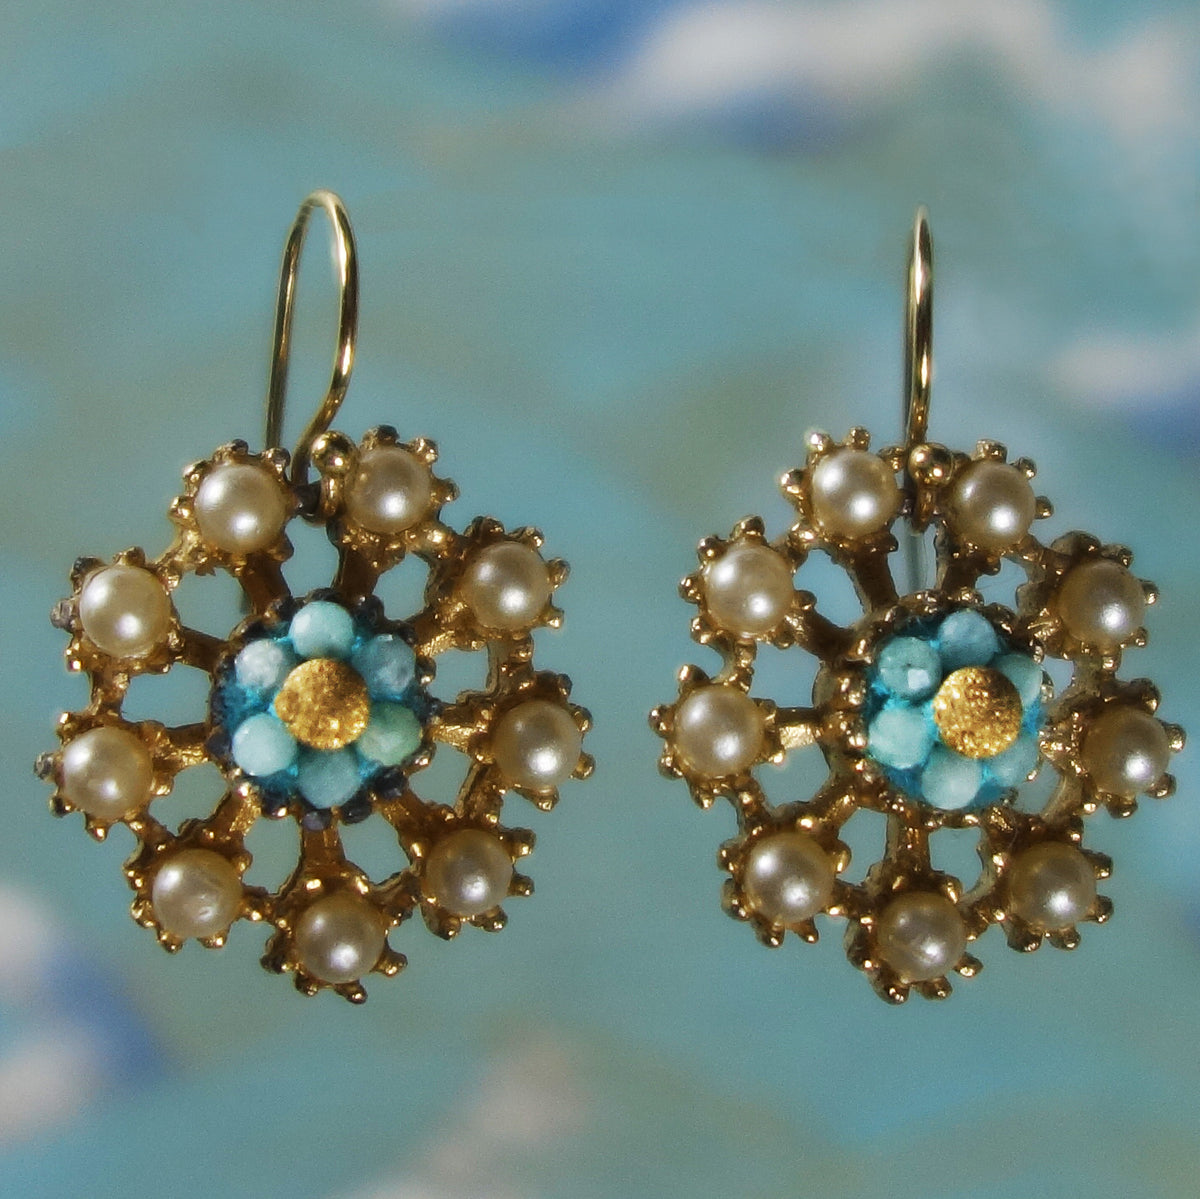 Siren's Symphony aquamarine, gold, and vintage pearl earrings